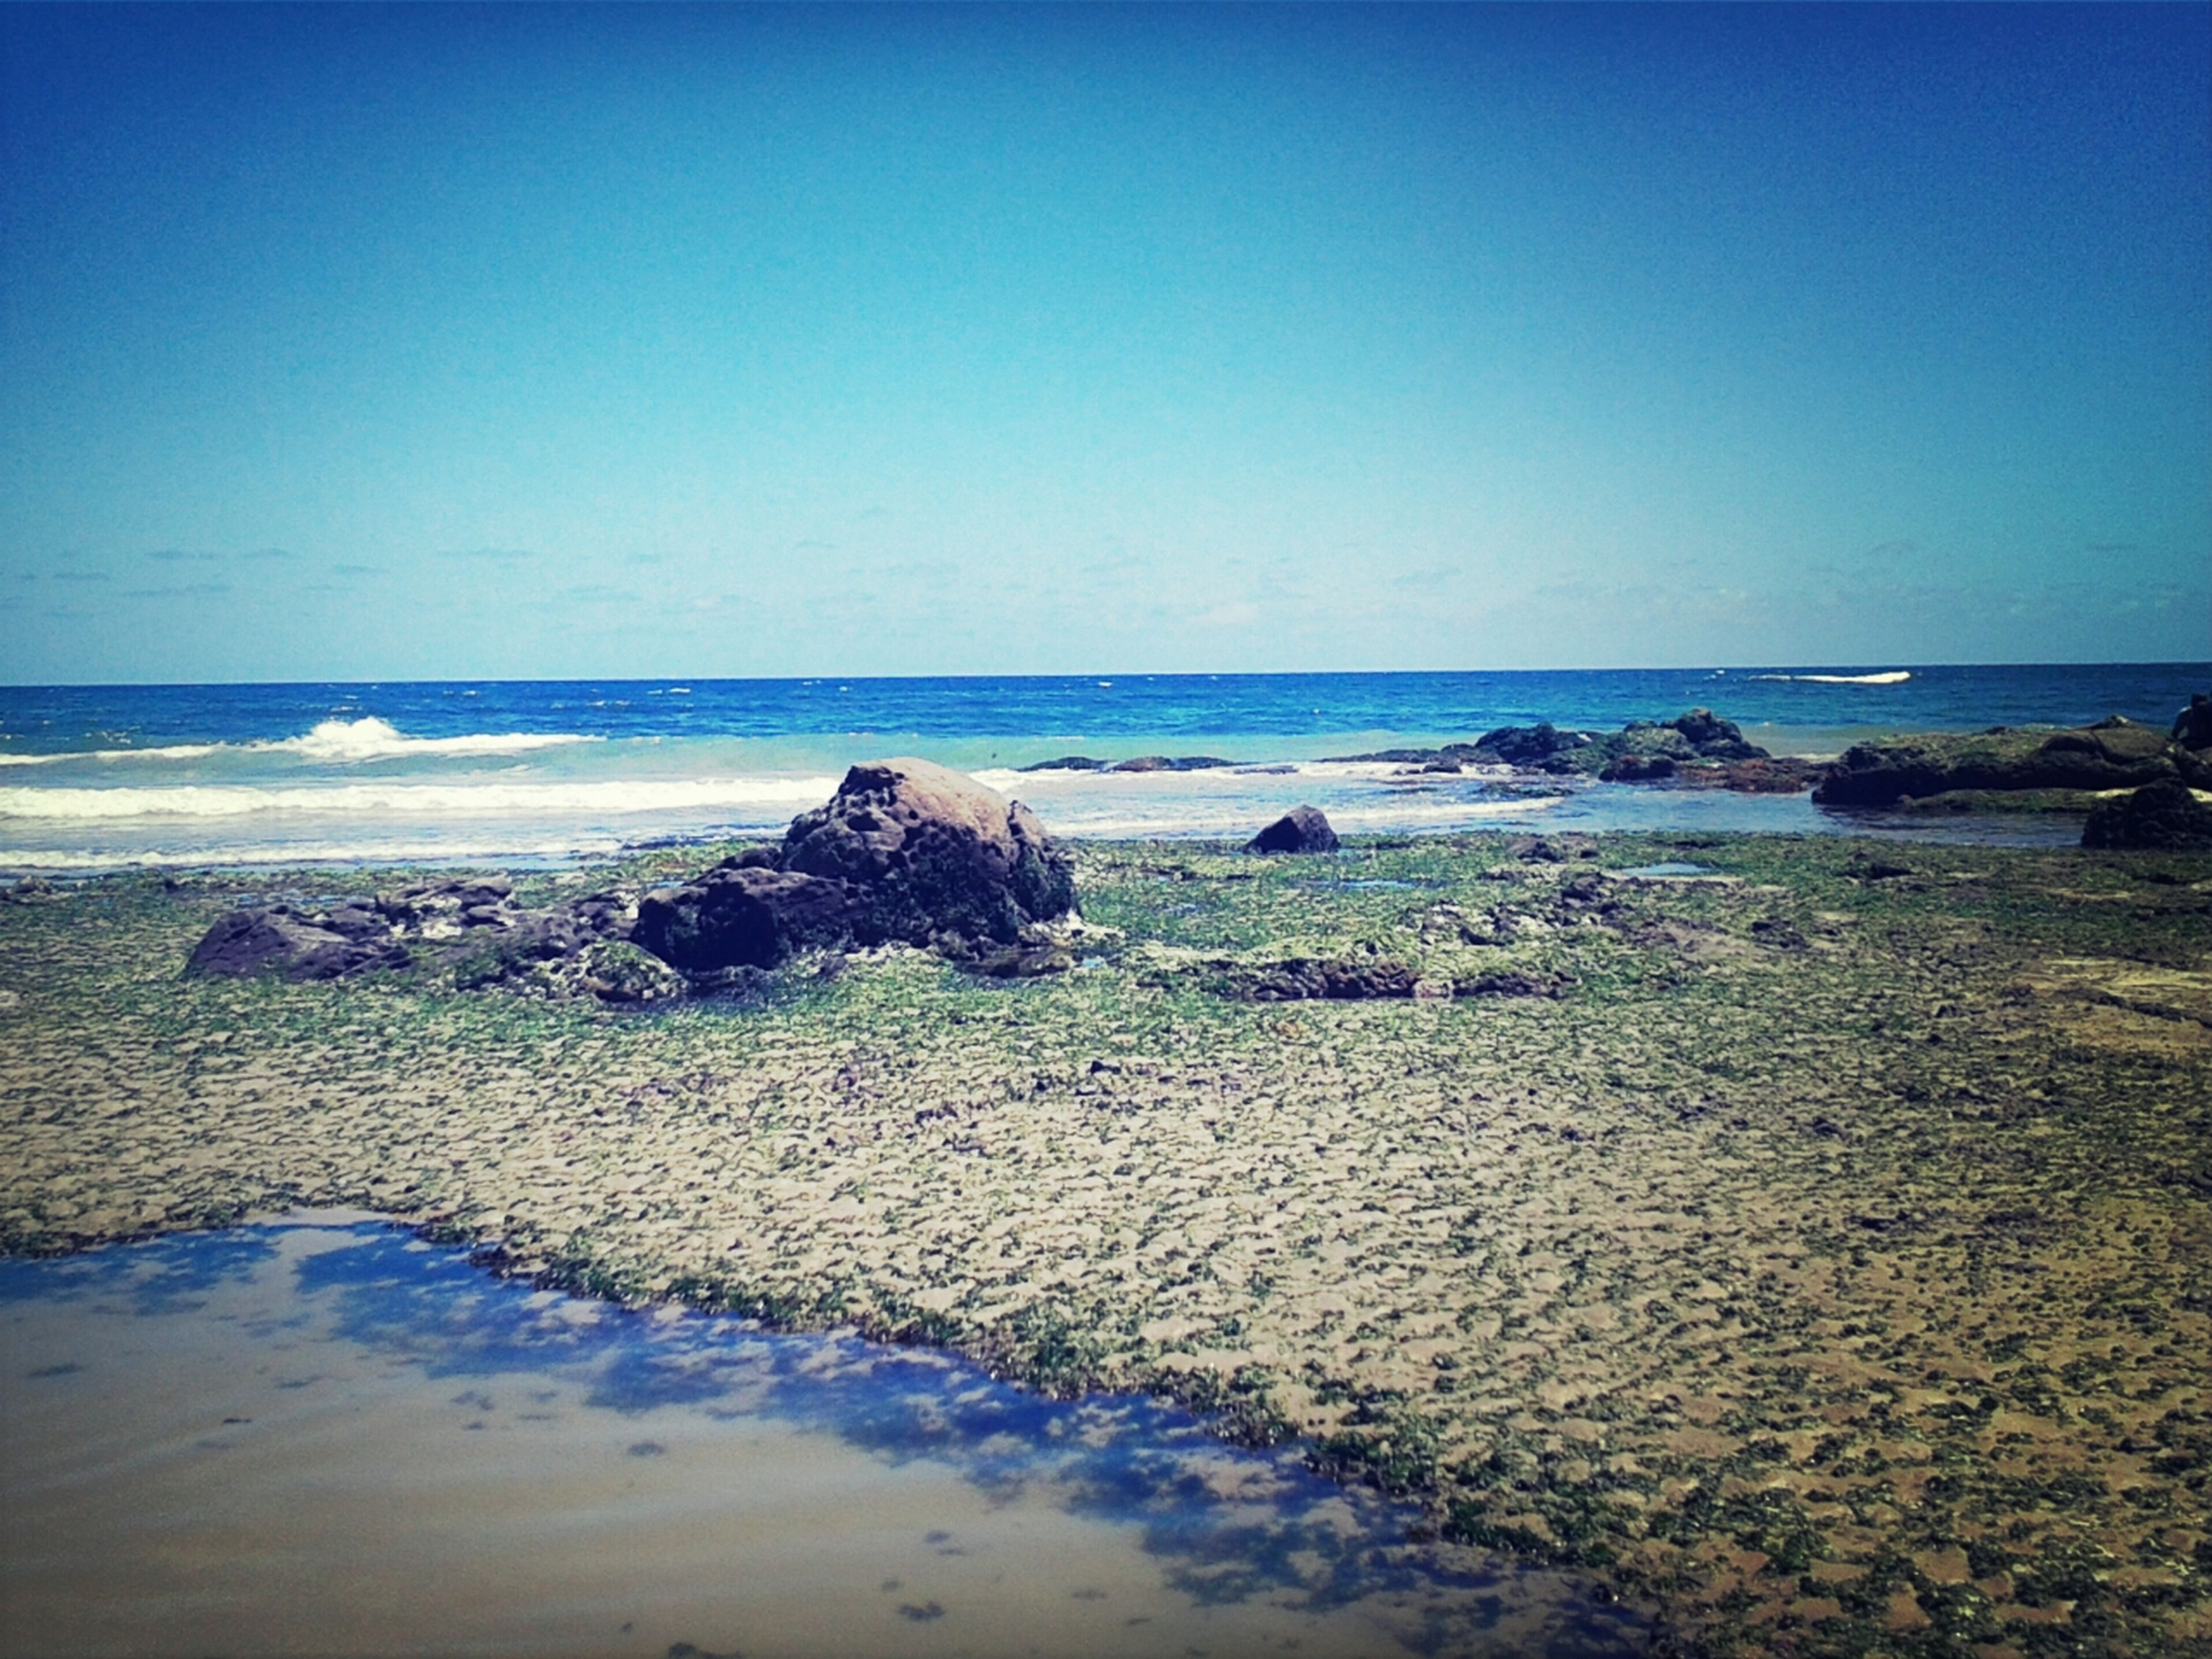 sea, beach, horizon over water, water, clear sky, shore, sand, tranquil scene, scenics, tranquility, copy space, beauty in nature, nature, blue, rock - object, coastline, wave, idyllic, sky, remote